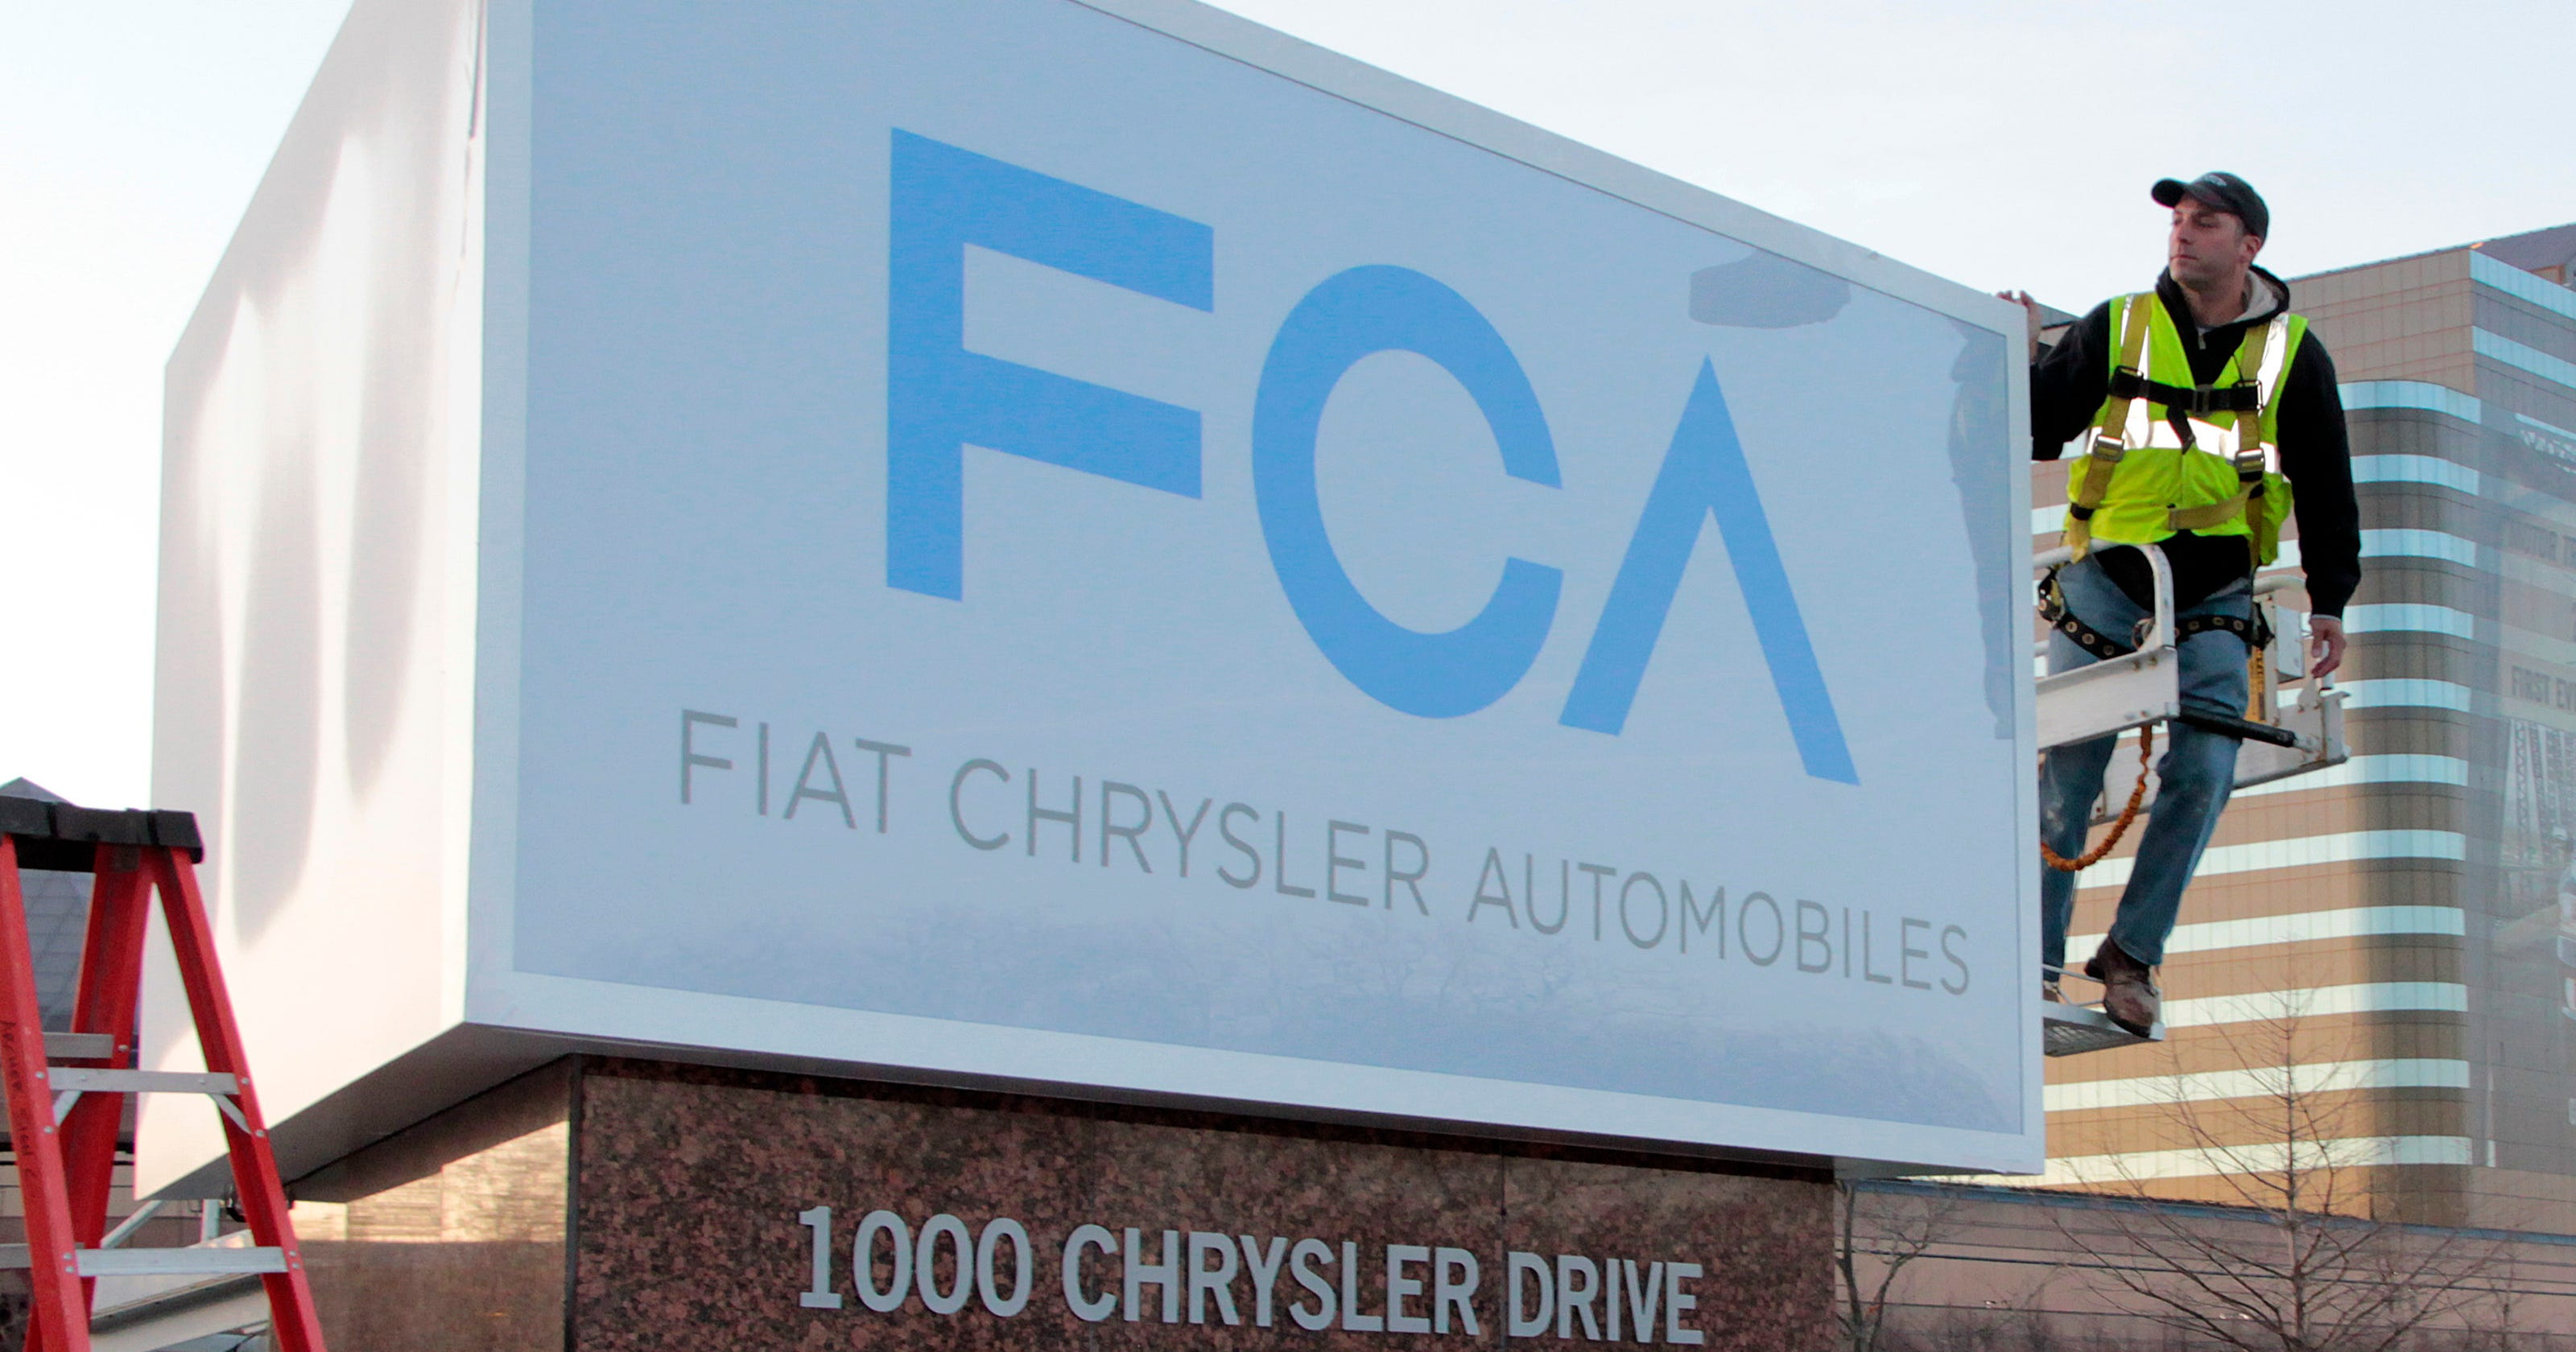 merger opens new chapter for fiat chrysler automobiles